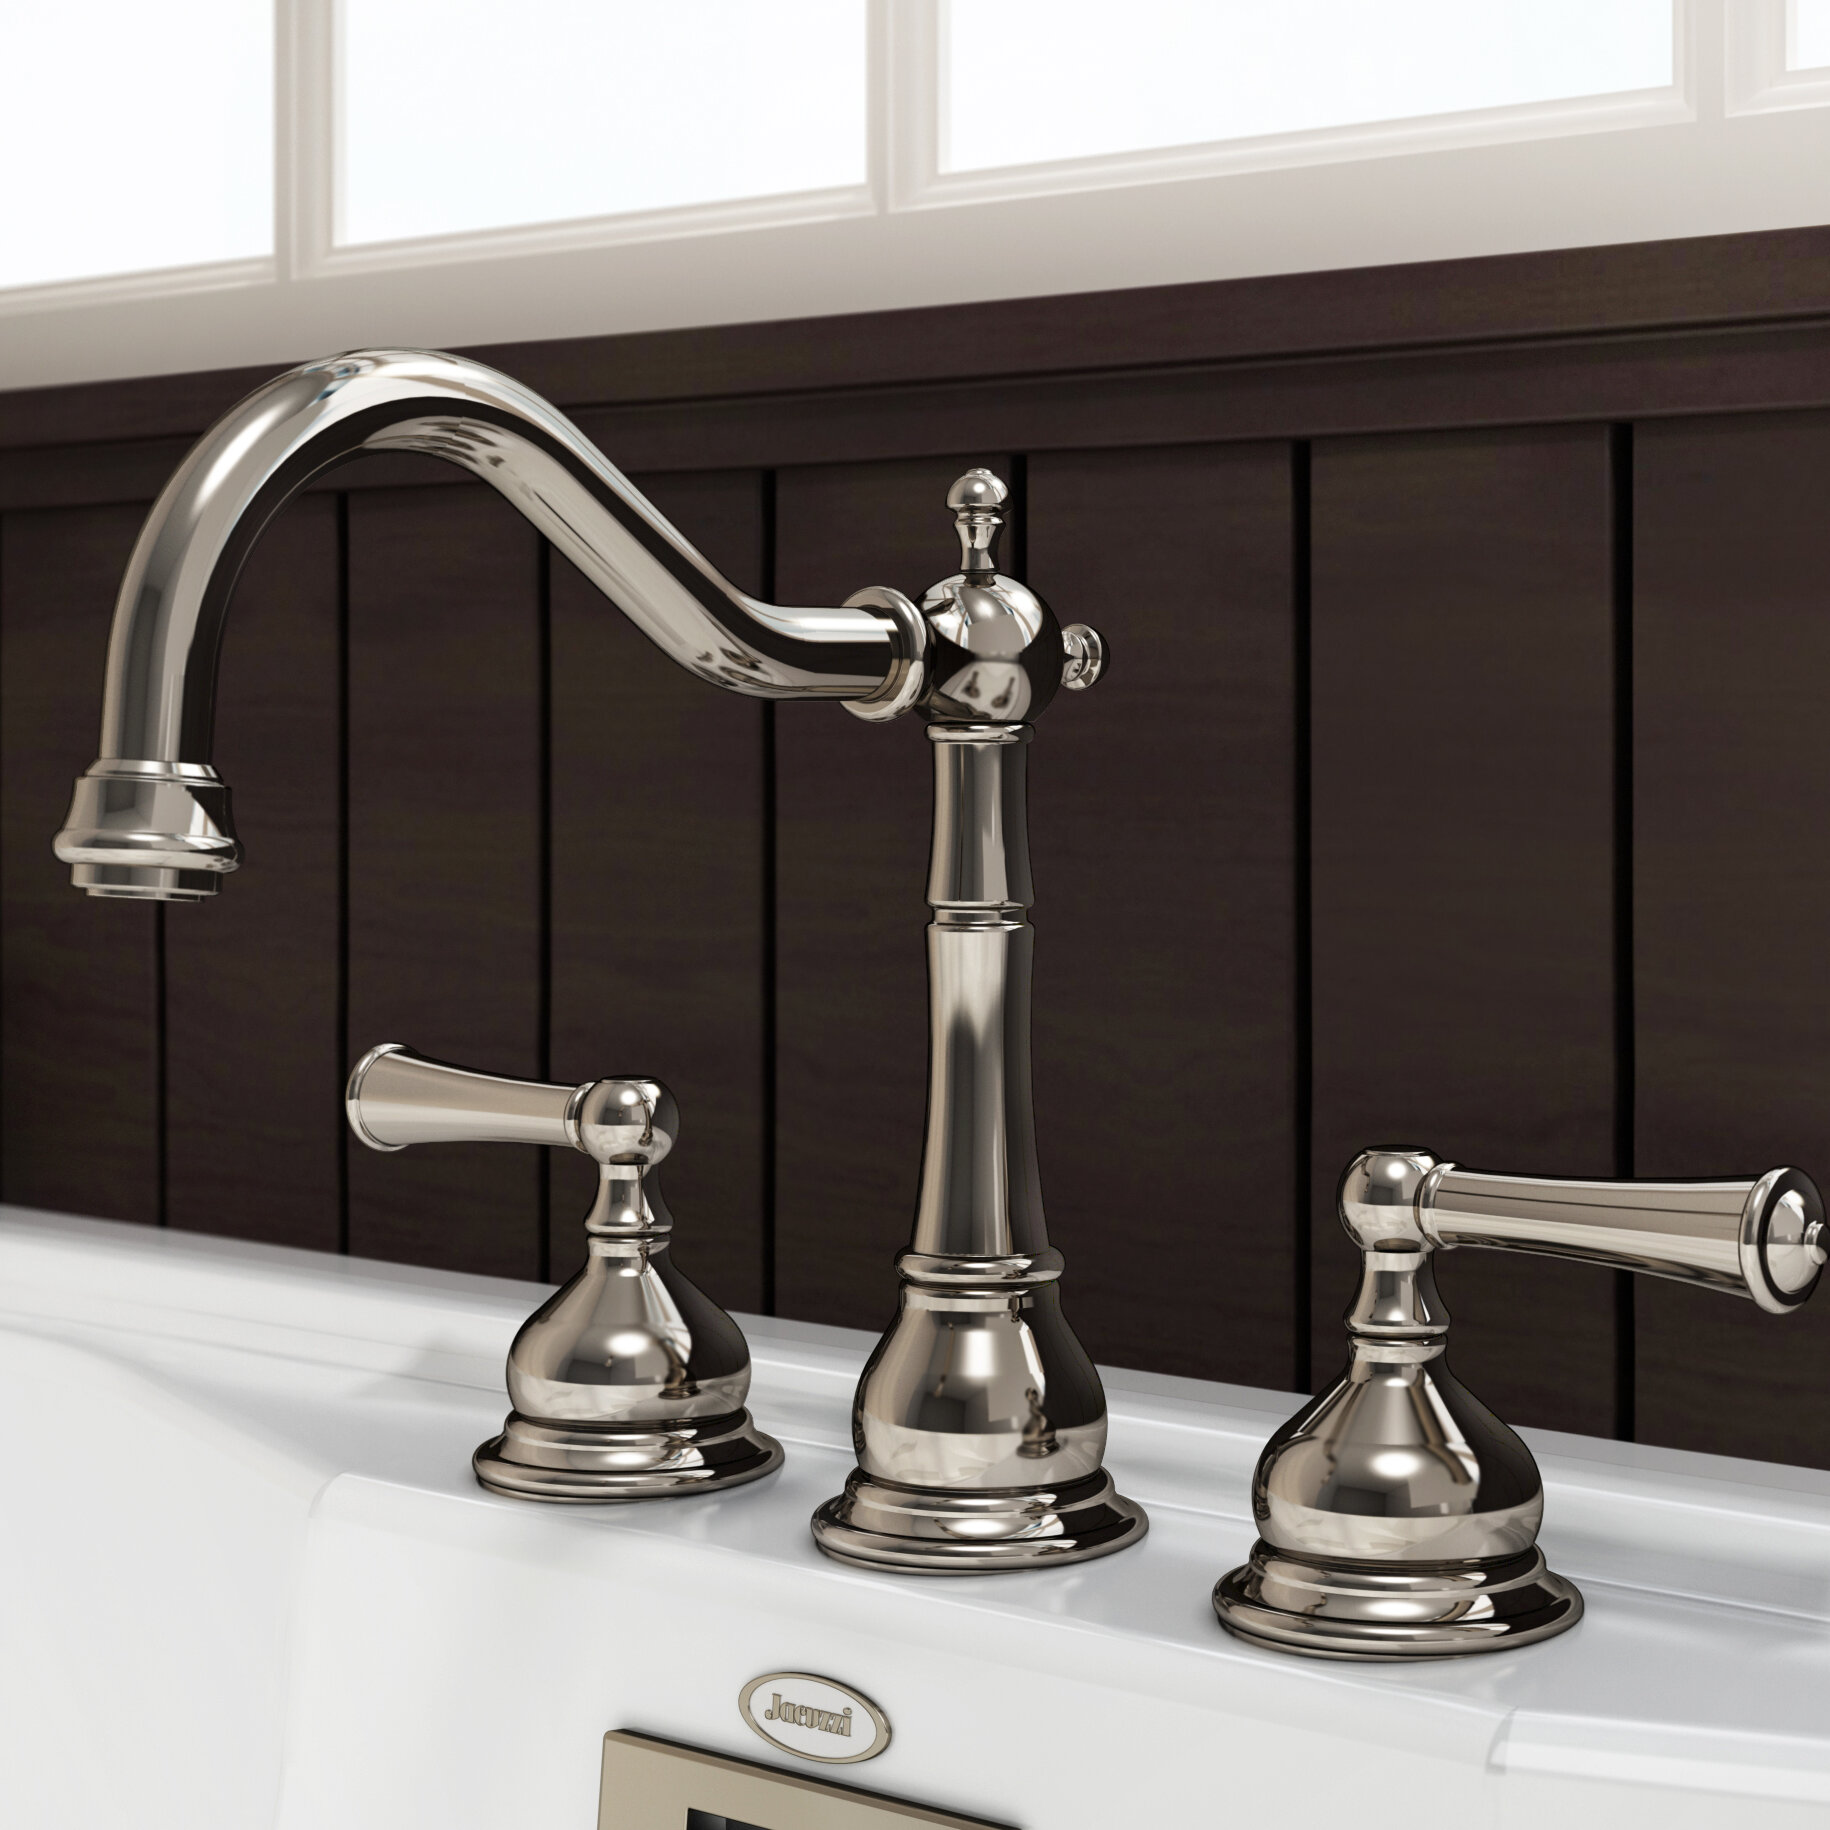 Jacuzzi® Barrea Bridge Widespread Bathroom Faucet with Drain ...